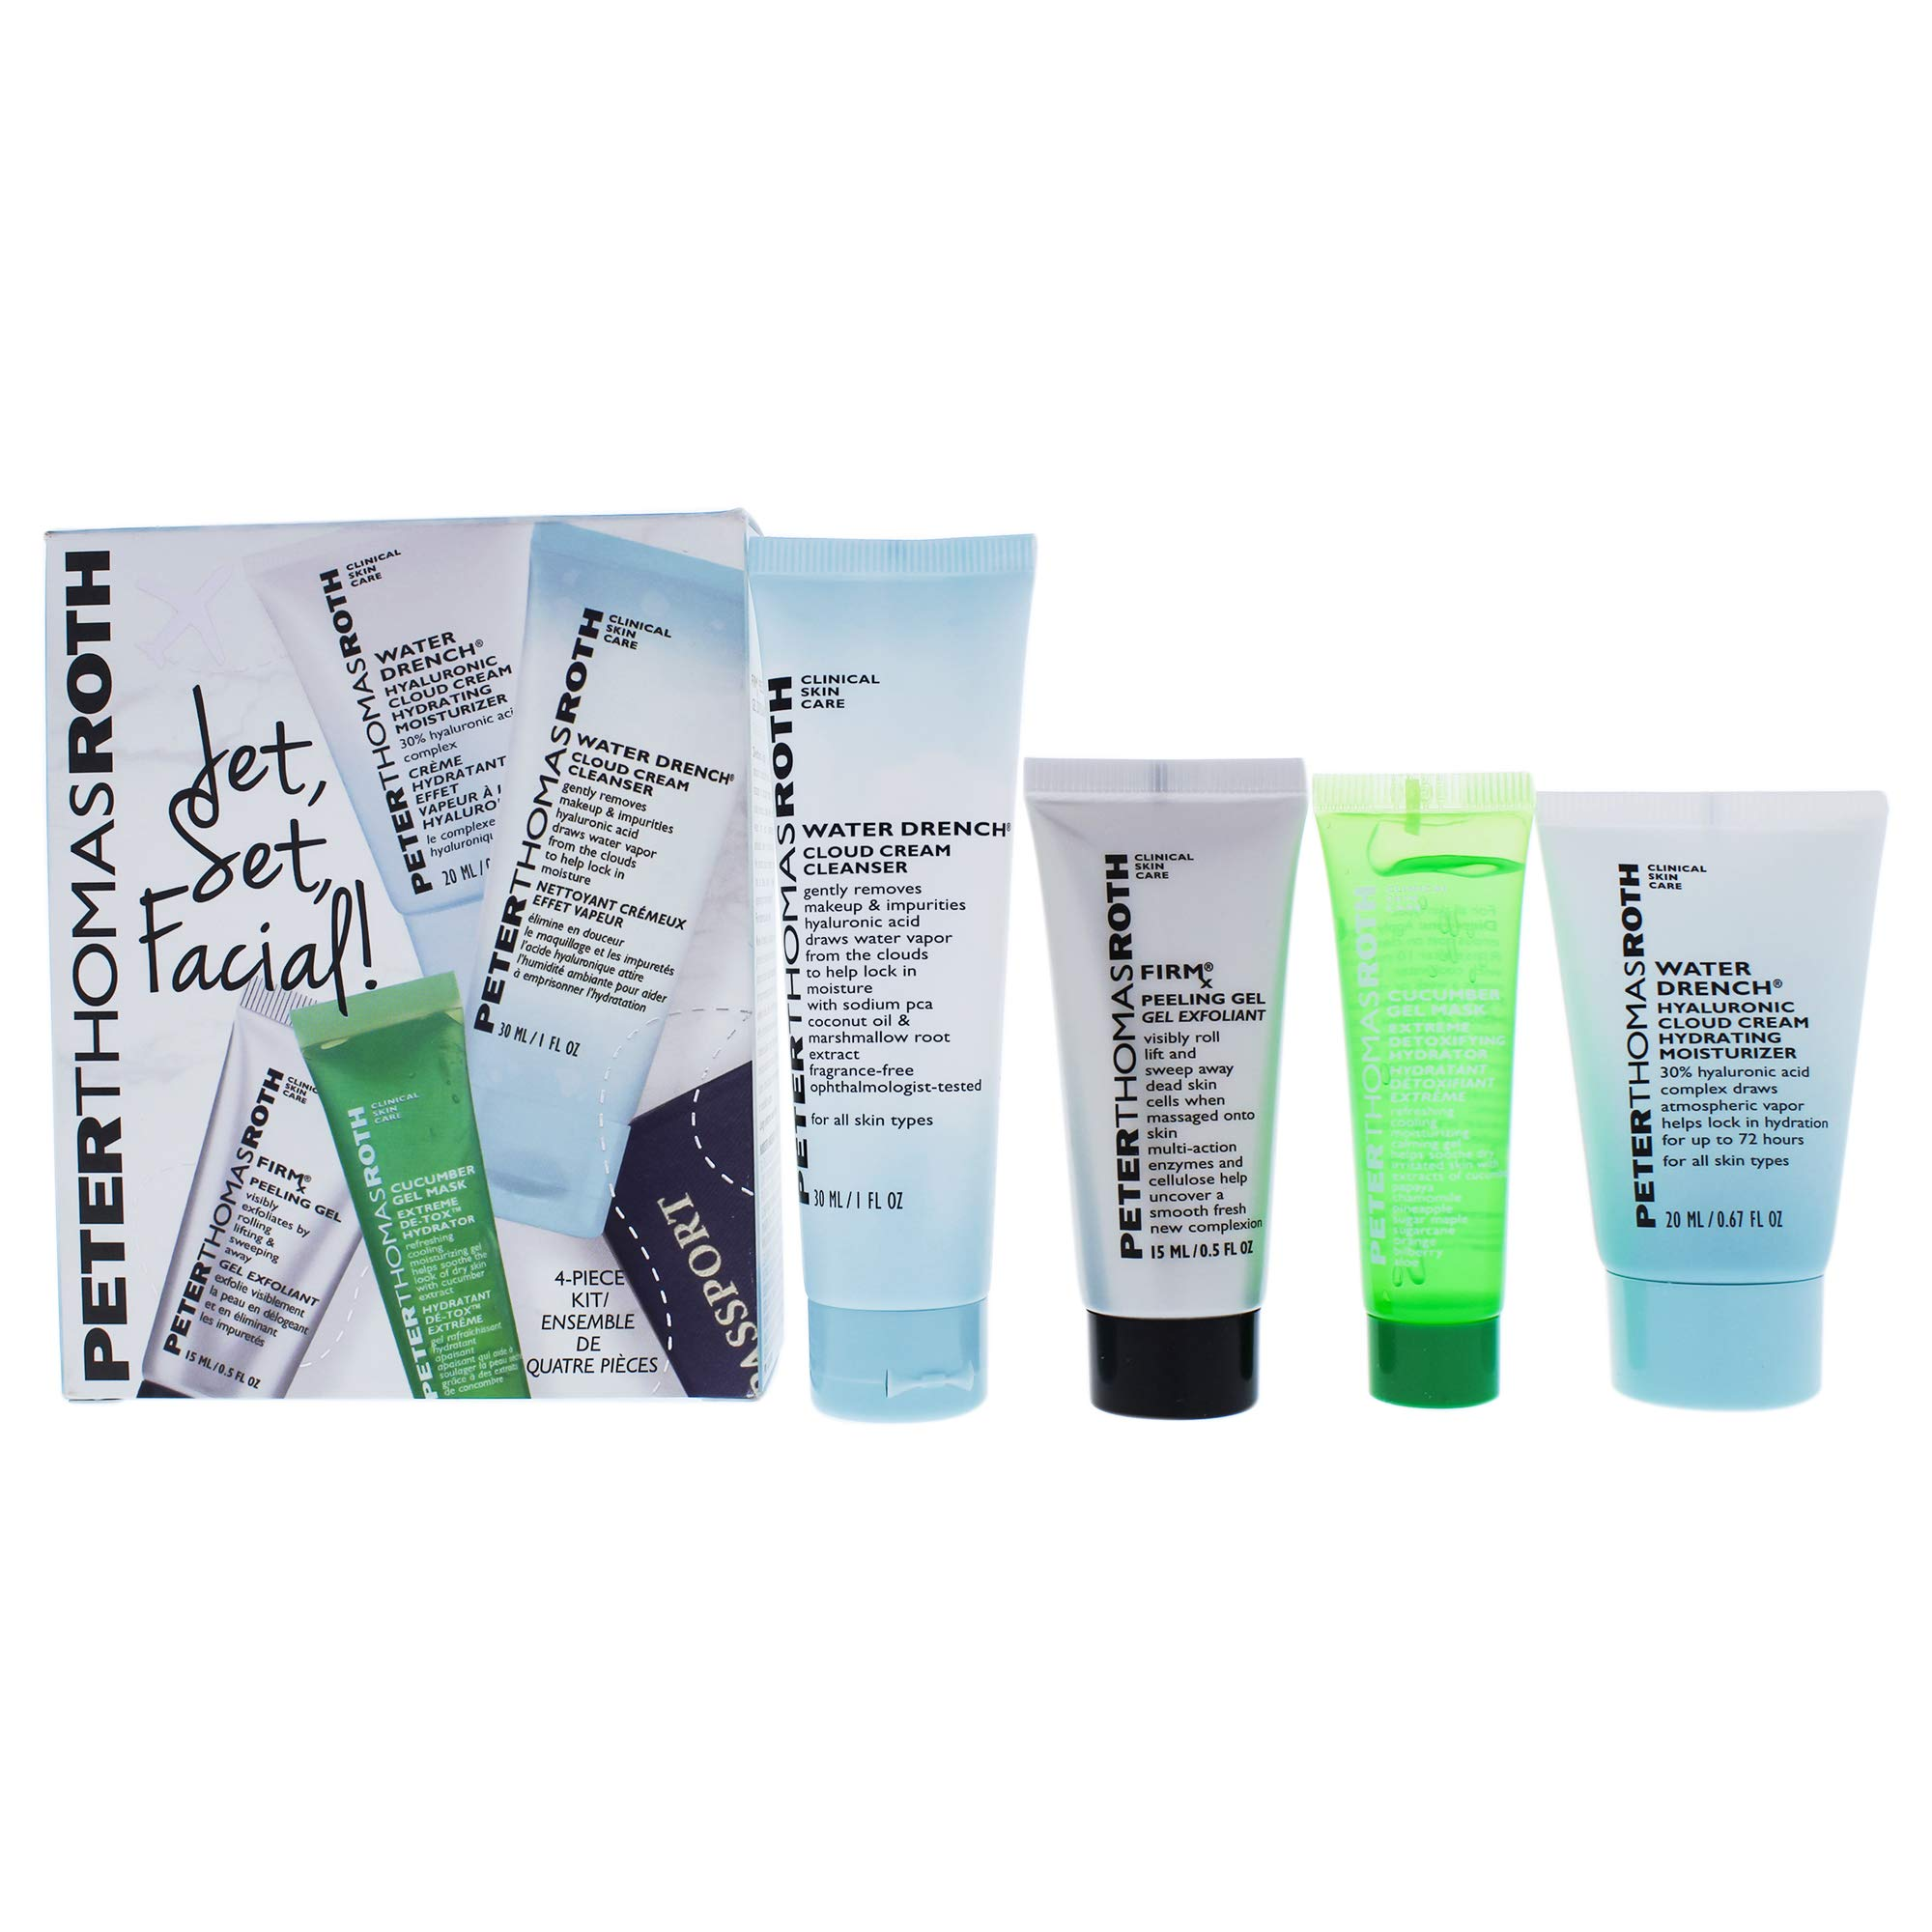 Peter Thomas Roth Jet Set, Facial Kit by Peter Thomas Roth